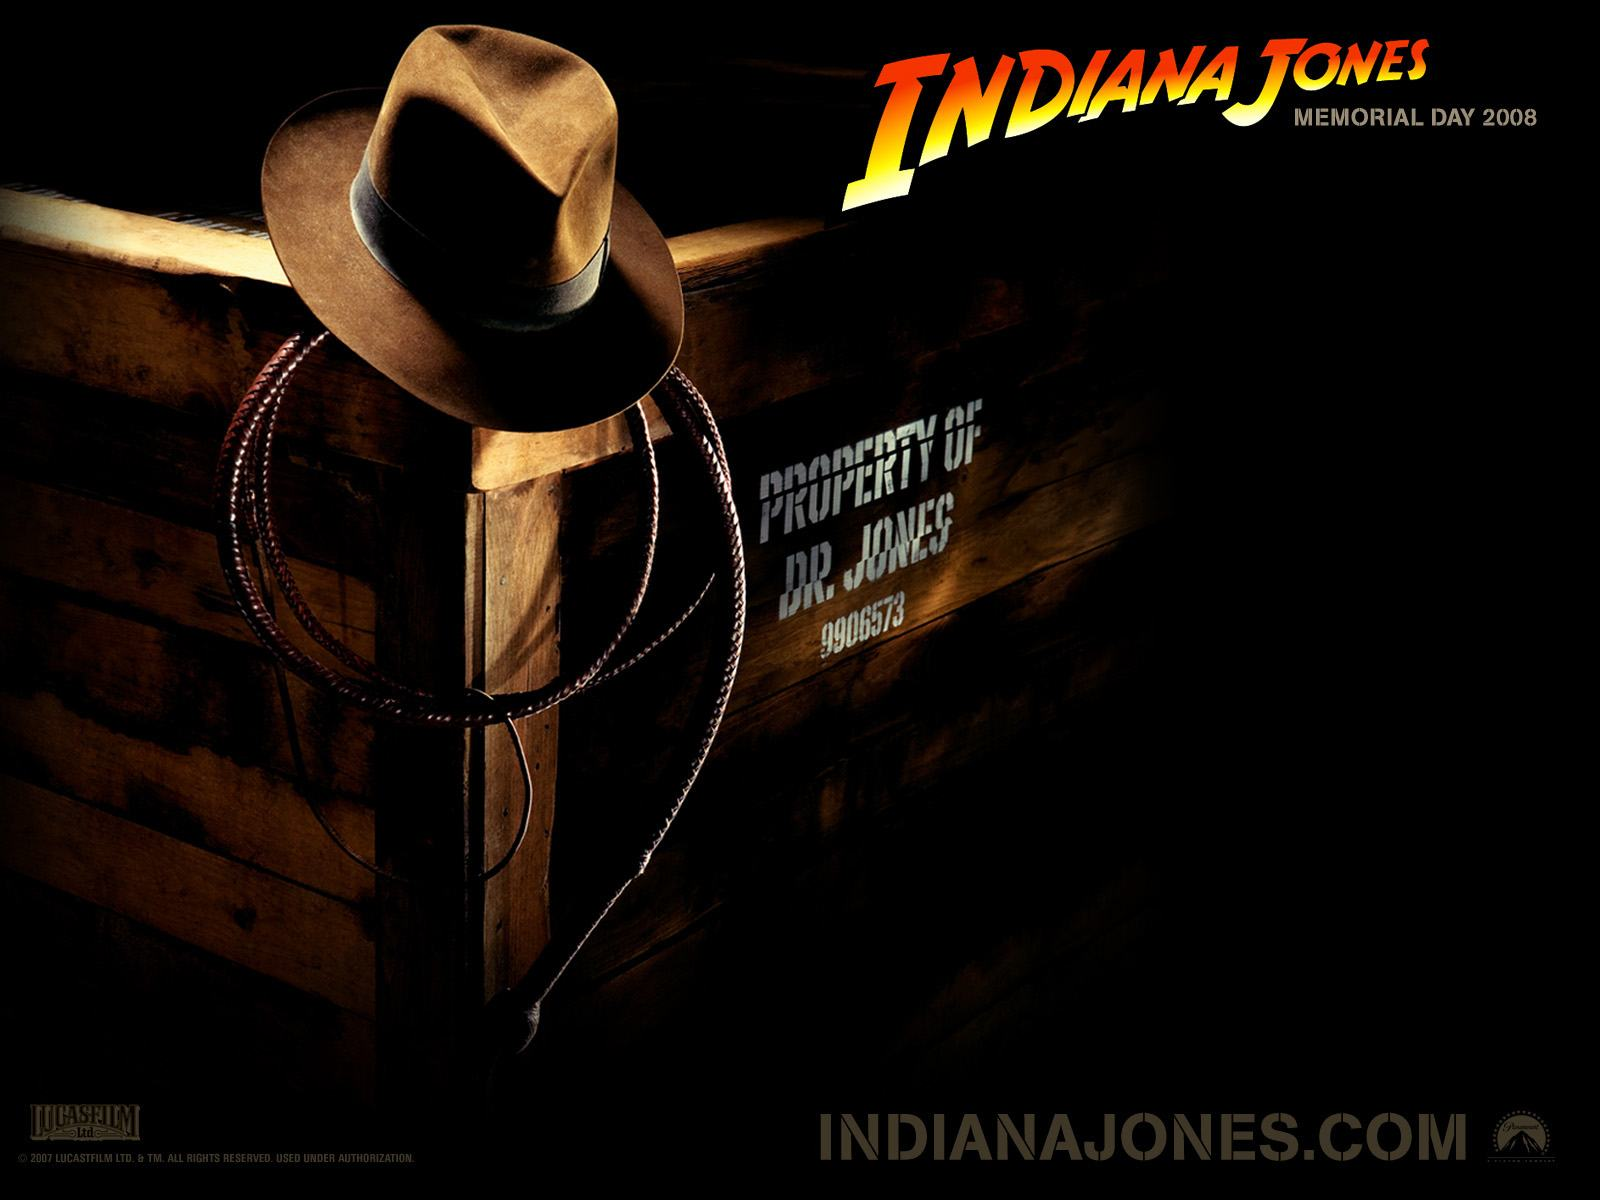 Indiana Jones 4 Materials Stolen, Man Got Arrested